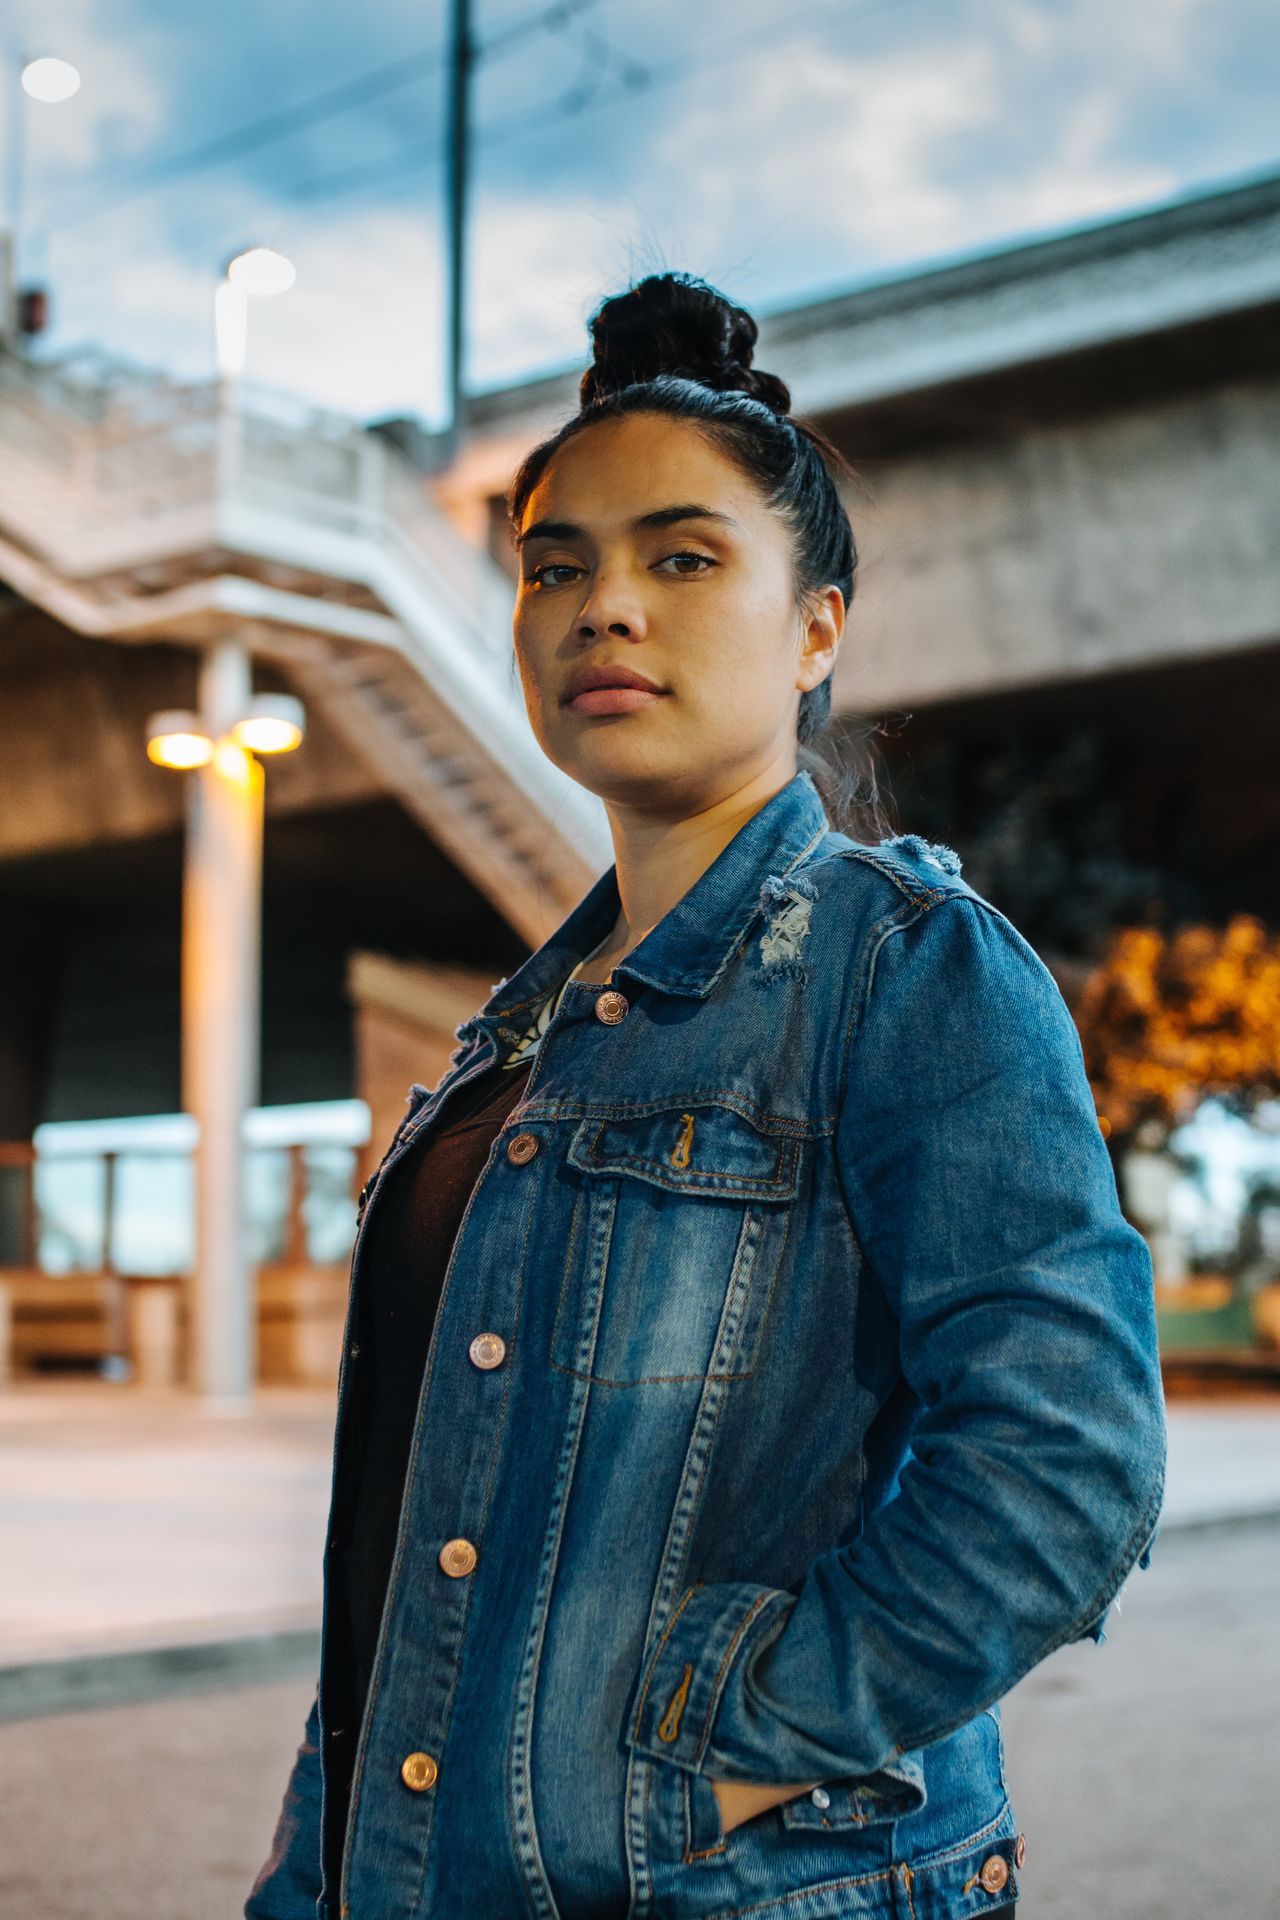 women around the world wife Love Mother Worker friend Badass Standing casual clothing lifestyles one person real people portrait young women denim jacket beautiful woman City women one young woman only streetphotography losangeles EyeEm Sunlight VSCO sunset Fresh on Market 2017